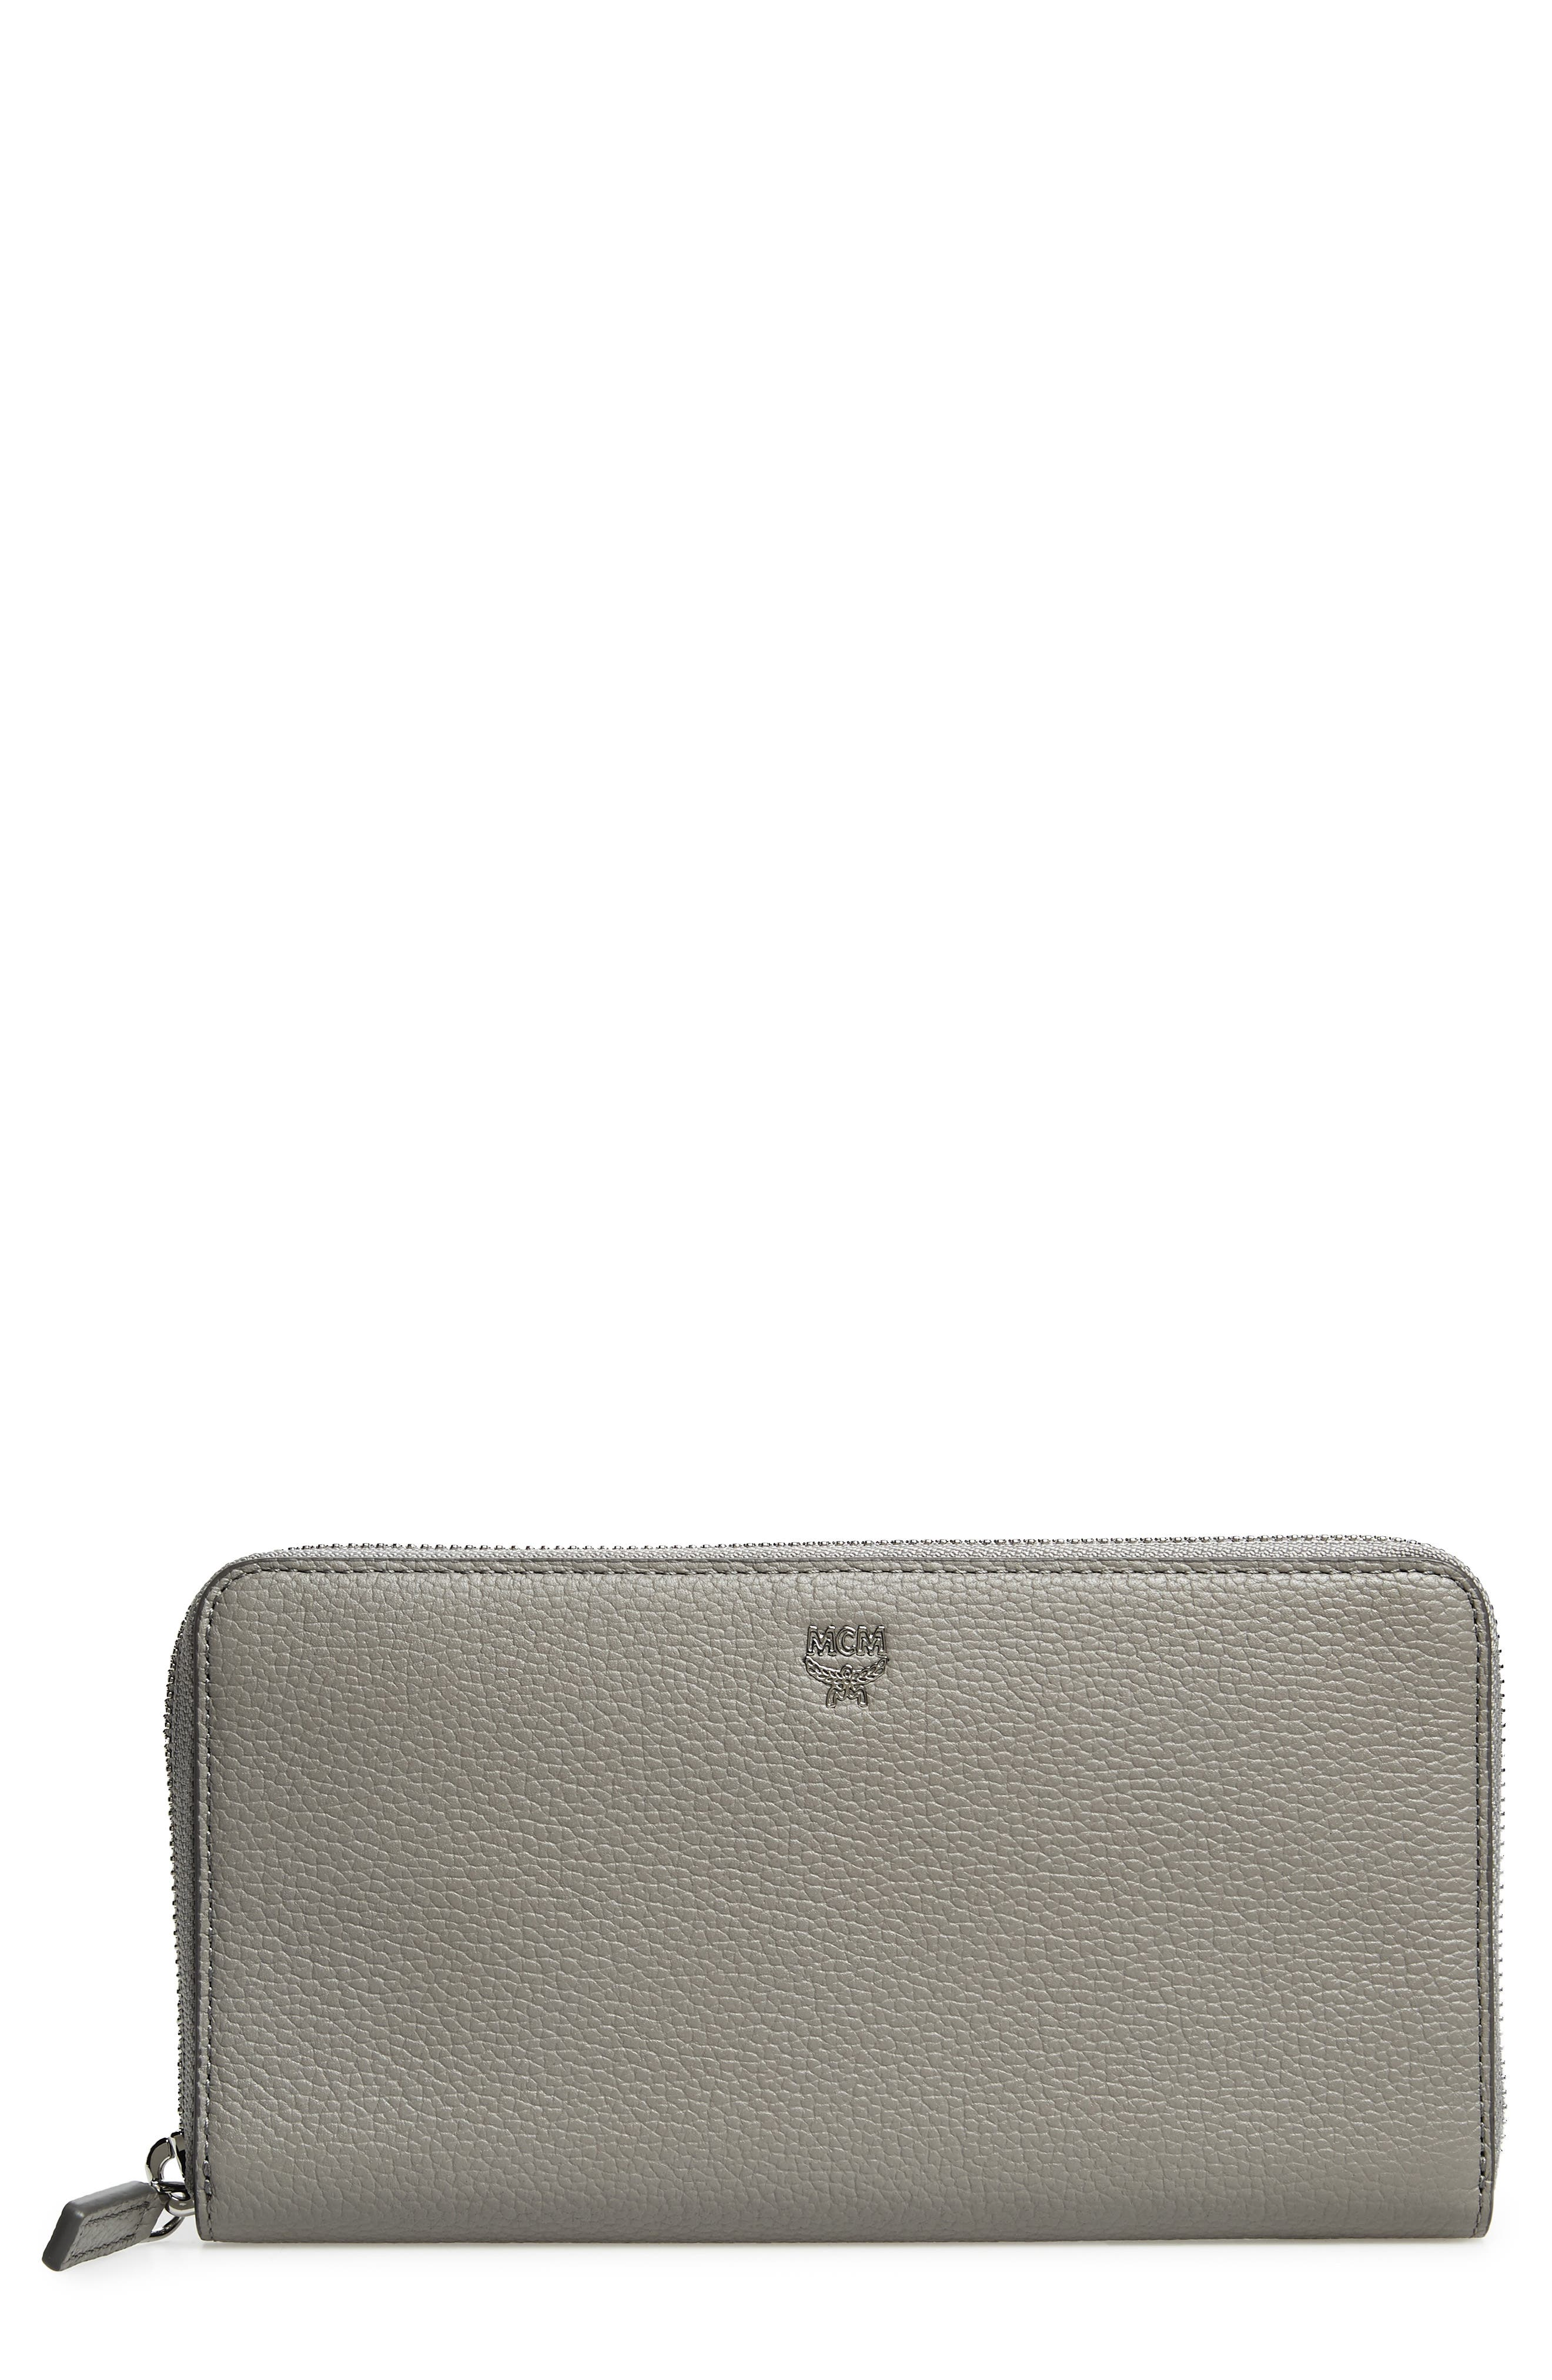 Main Image - MCM Large Milla Zip-Around Leather Wallet